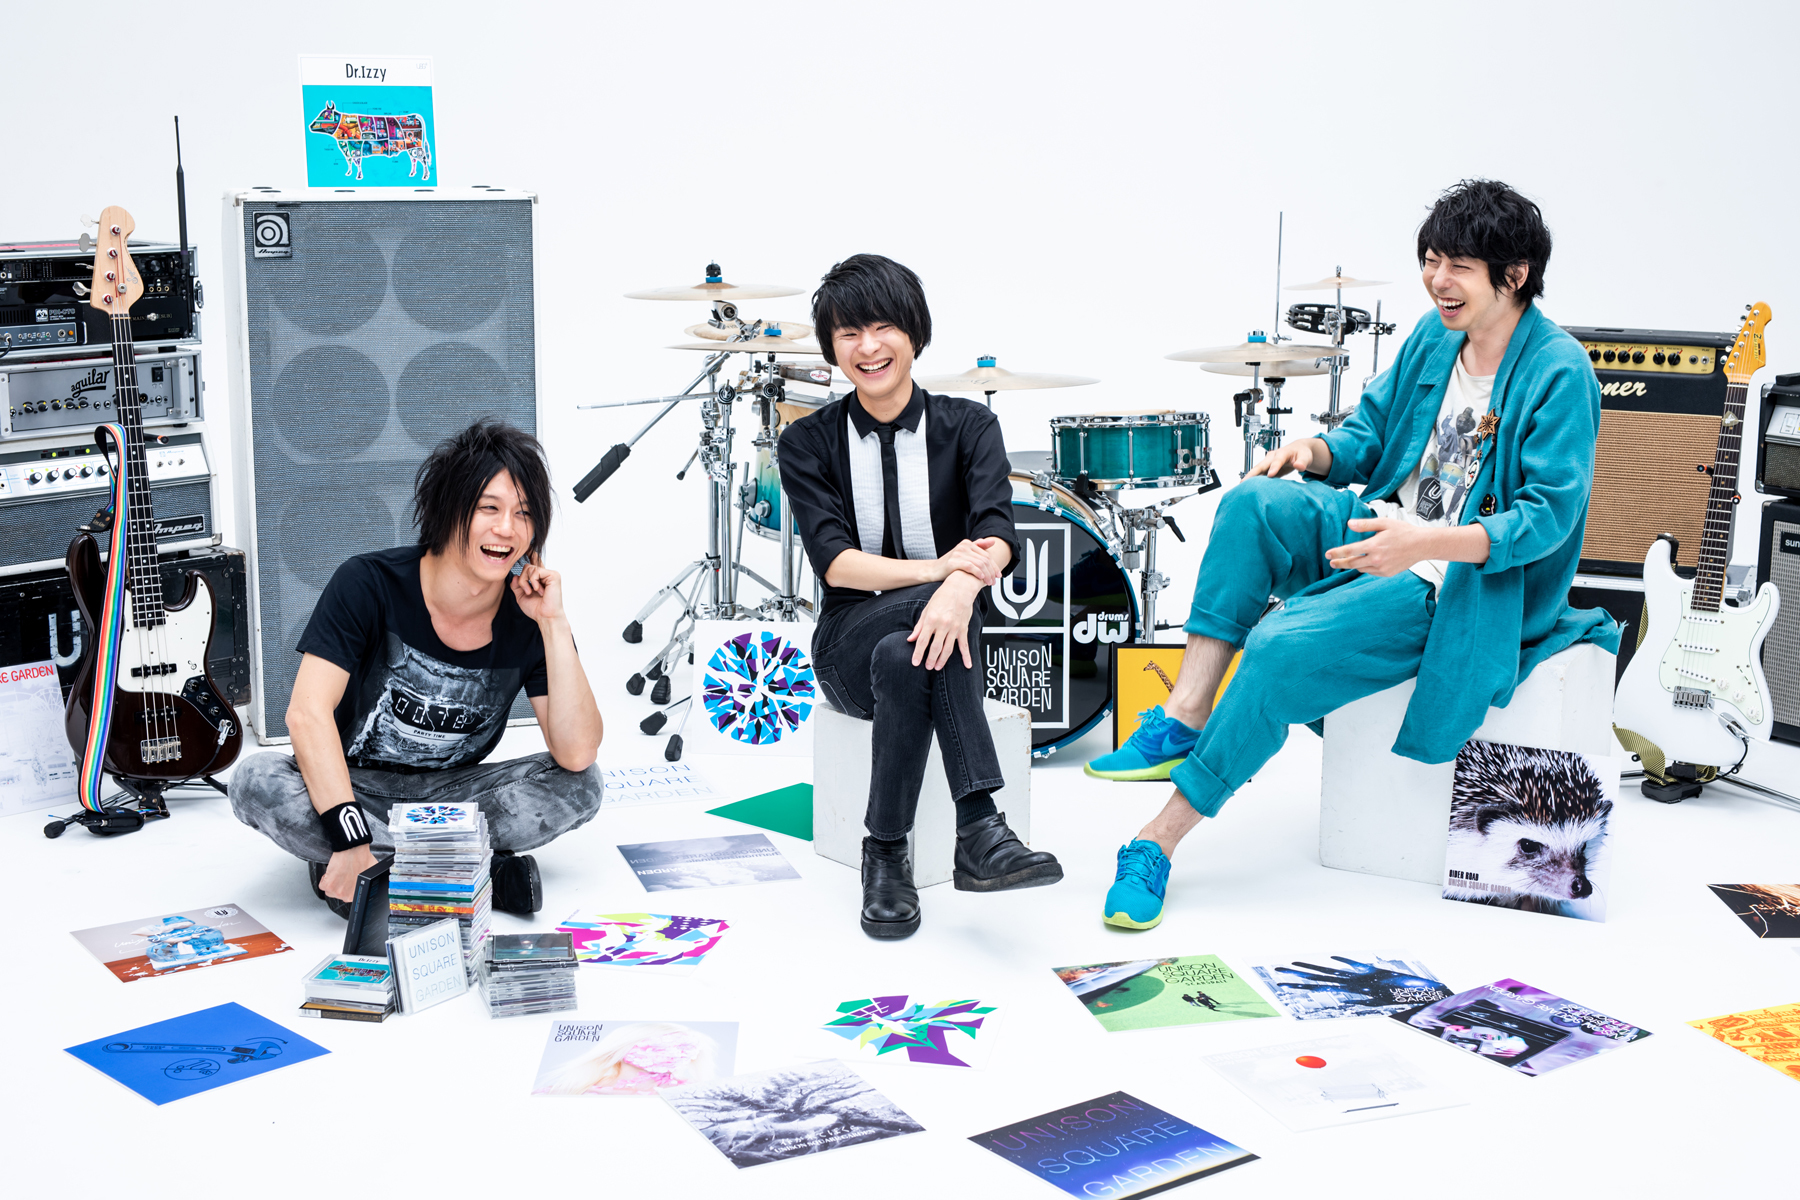 UNISON SQUARE GARDEN | Sony Music Artists